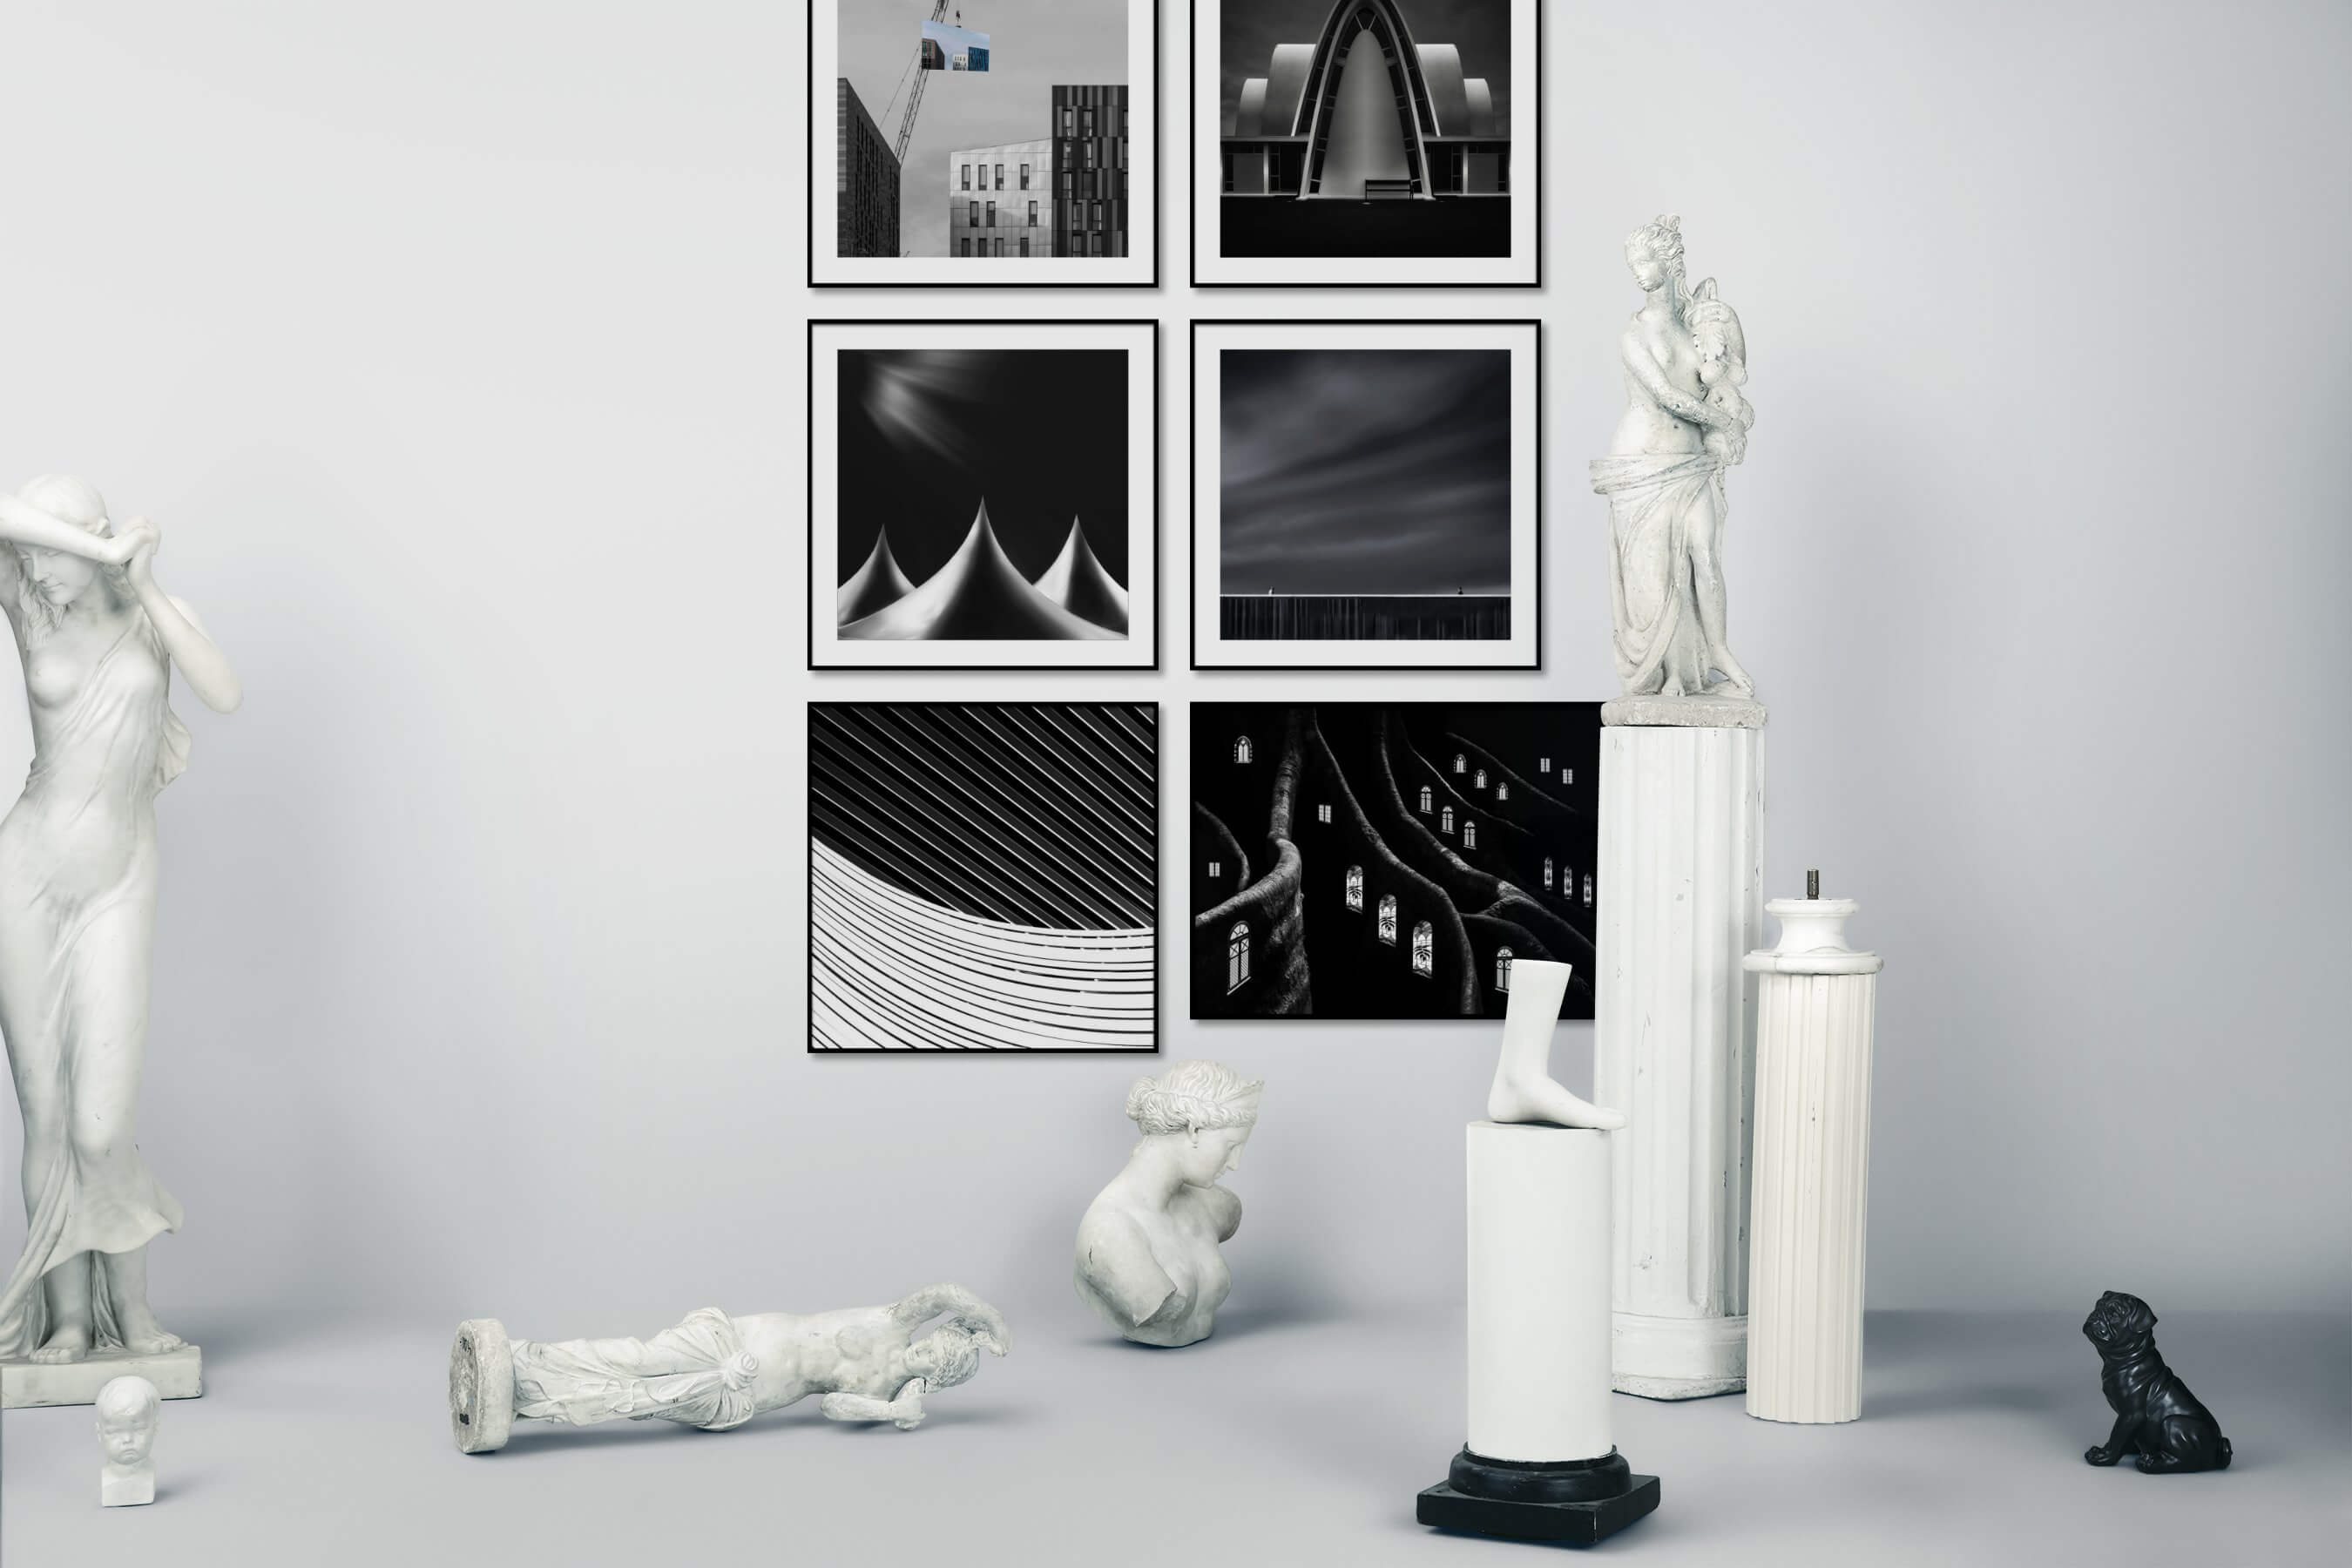 Gallery wall idea with six framed pictures arranged on a wall depicting City Life, Black & White, For the Minimalist, For the Maximalist, Artsy, and Dark Tones